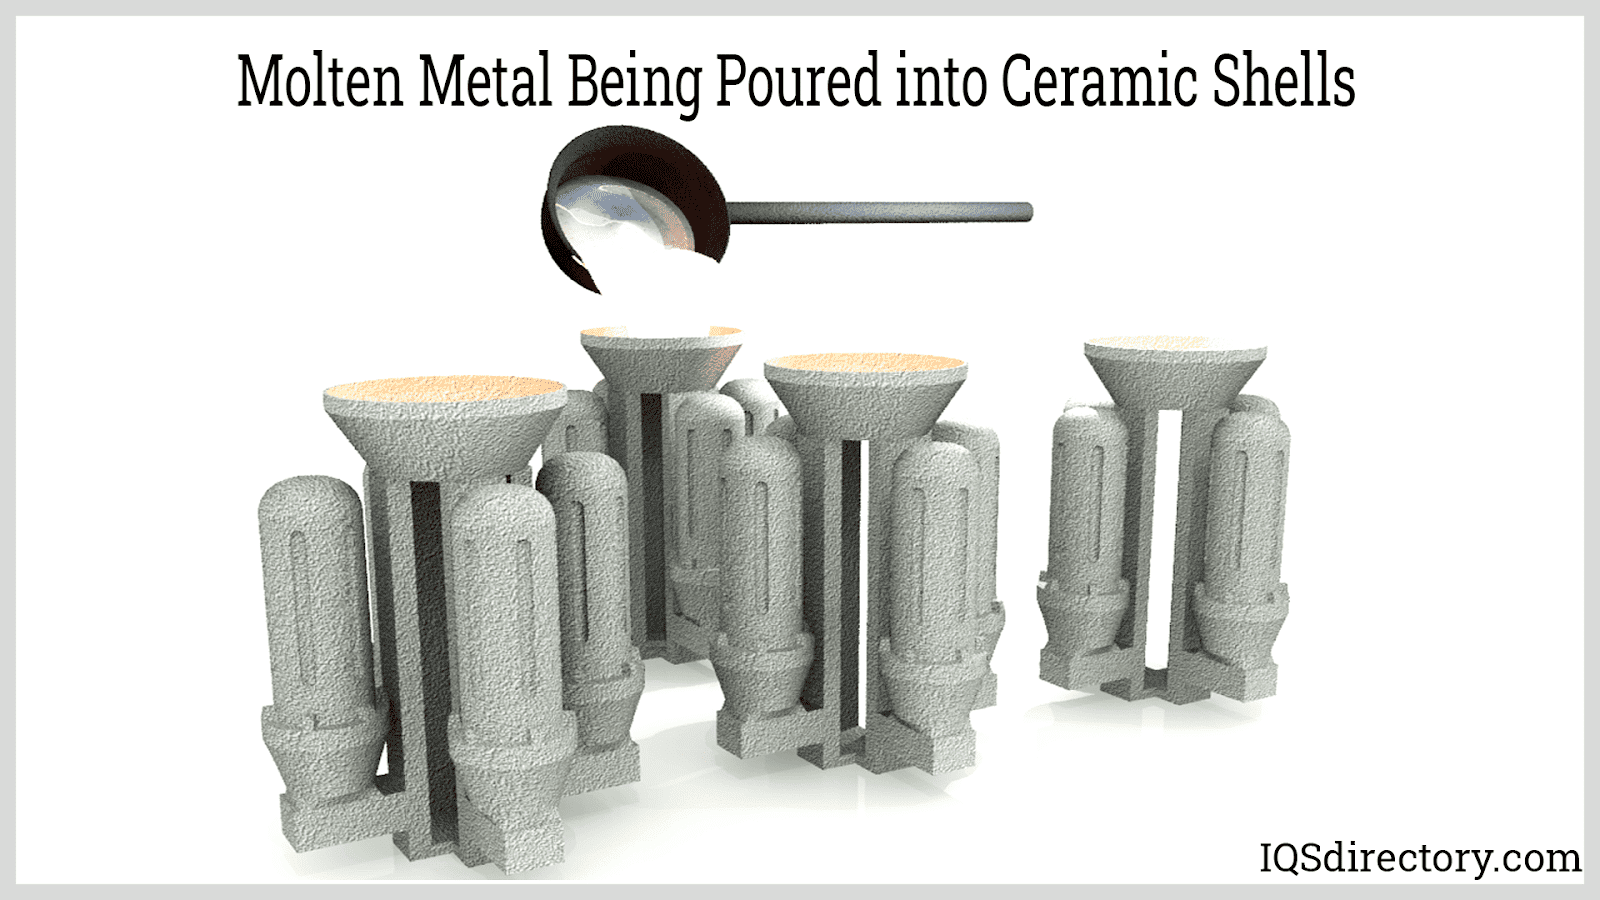 Molten Metal Being Poured into Ceramic Shells